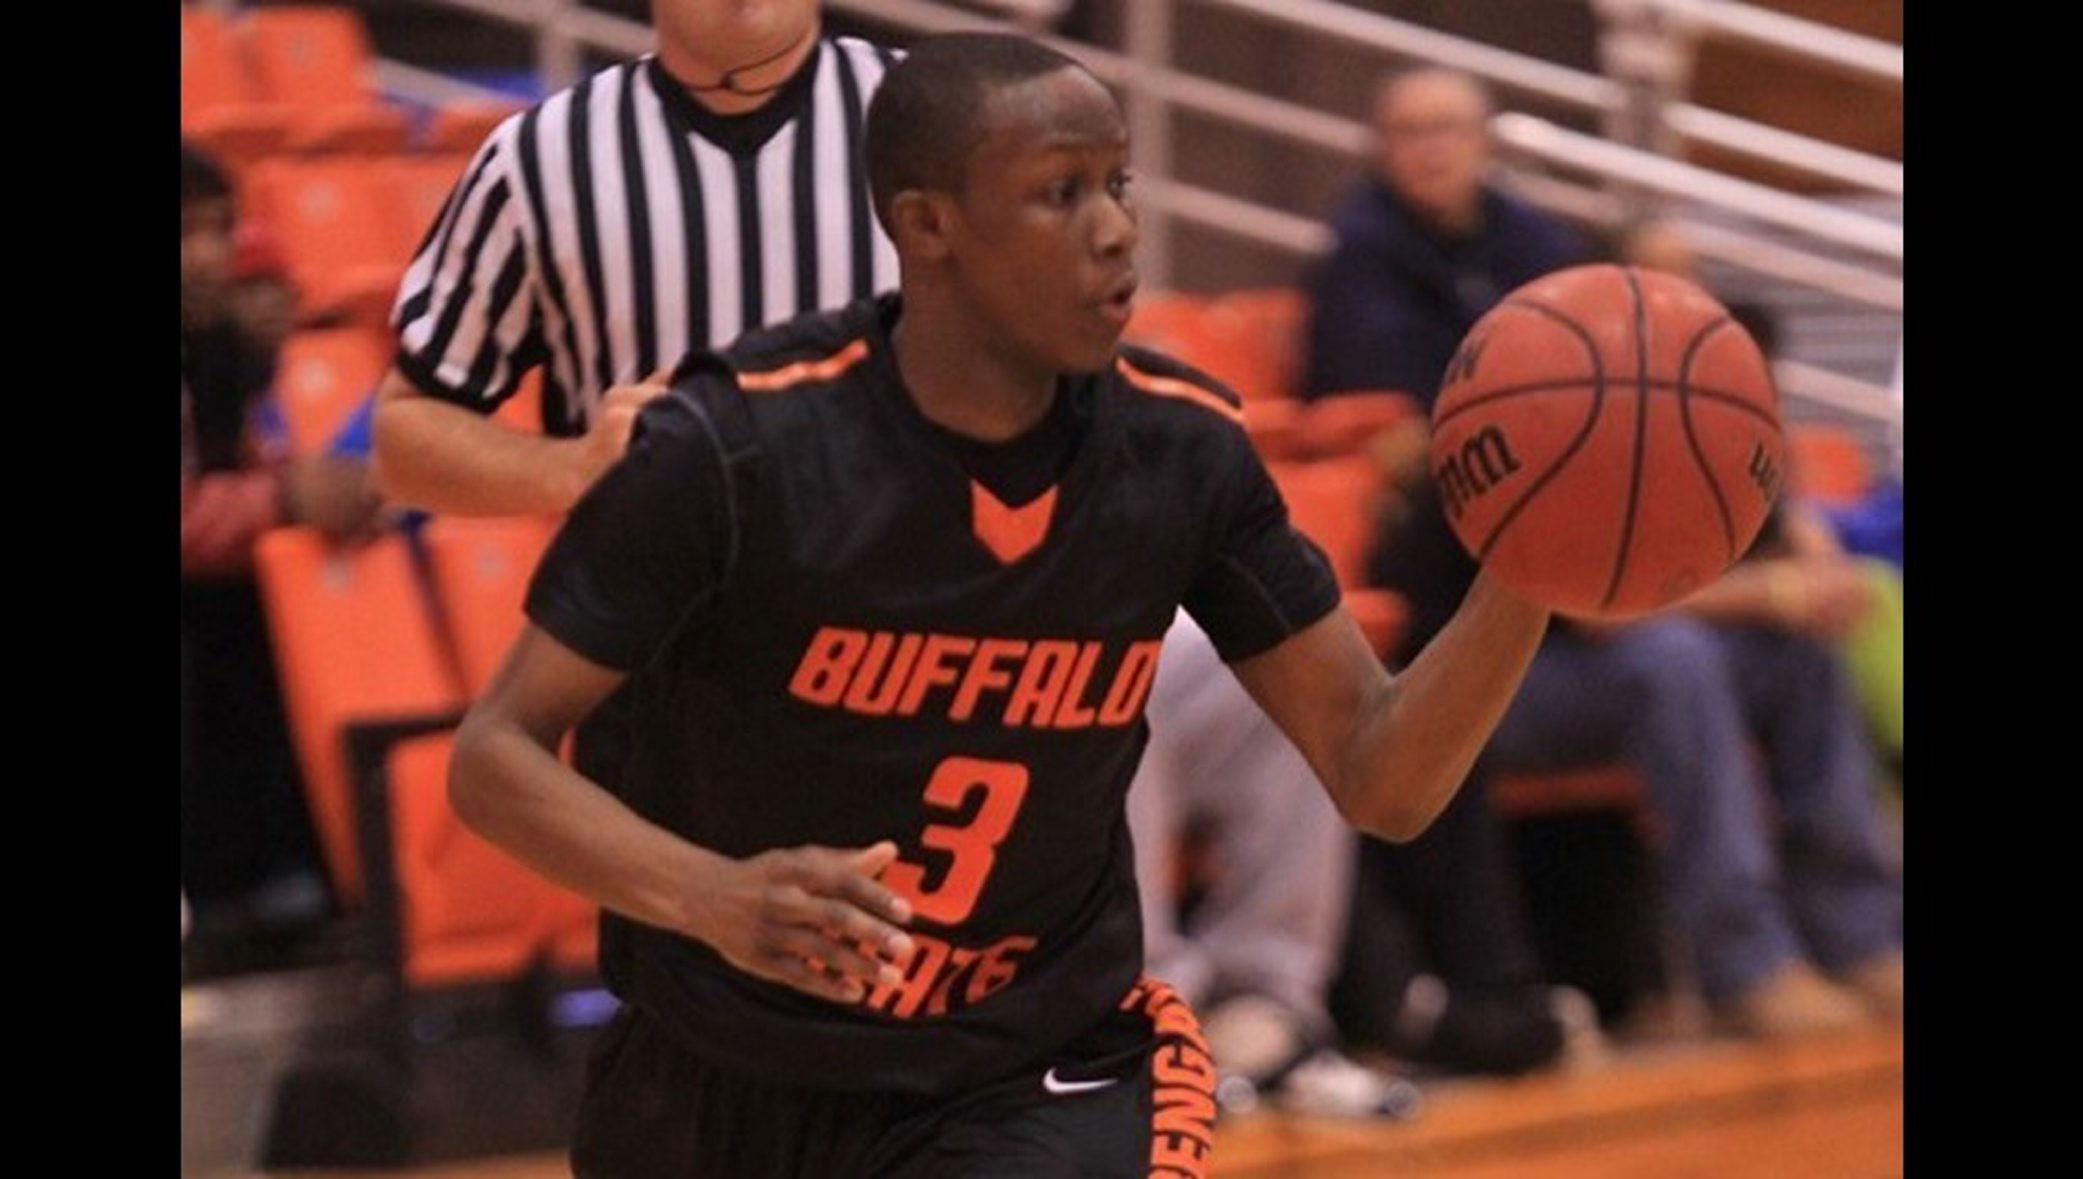 SUNY Buffalo State senior Bradley D'Oyley, shown on the Bengals basketball team from the 2013-14 season, has died.